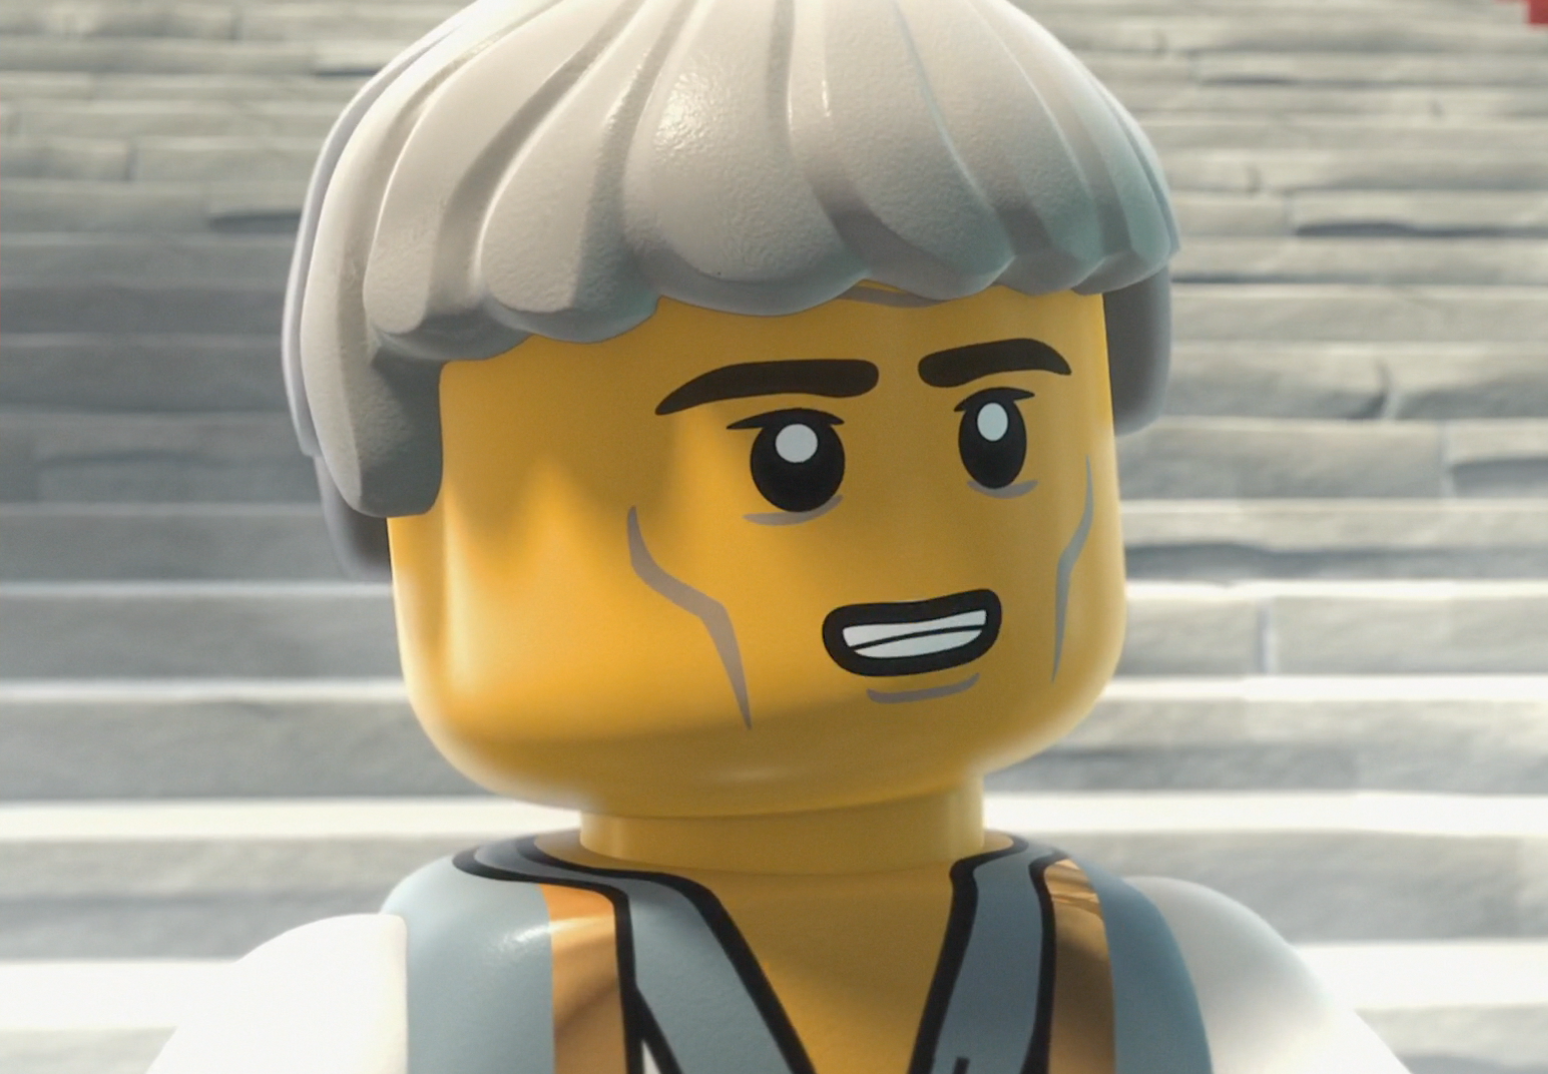 fenwick ninjago wiki fandom powered by wikia moscfenwick